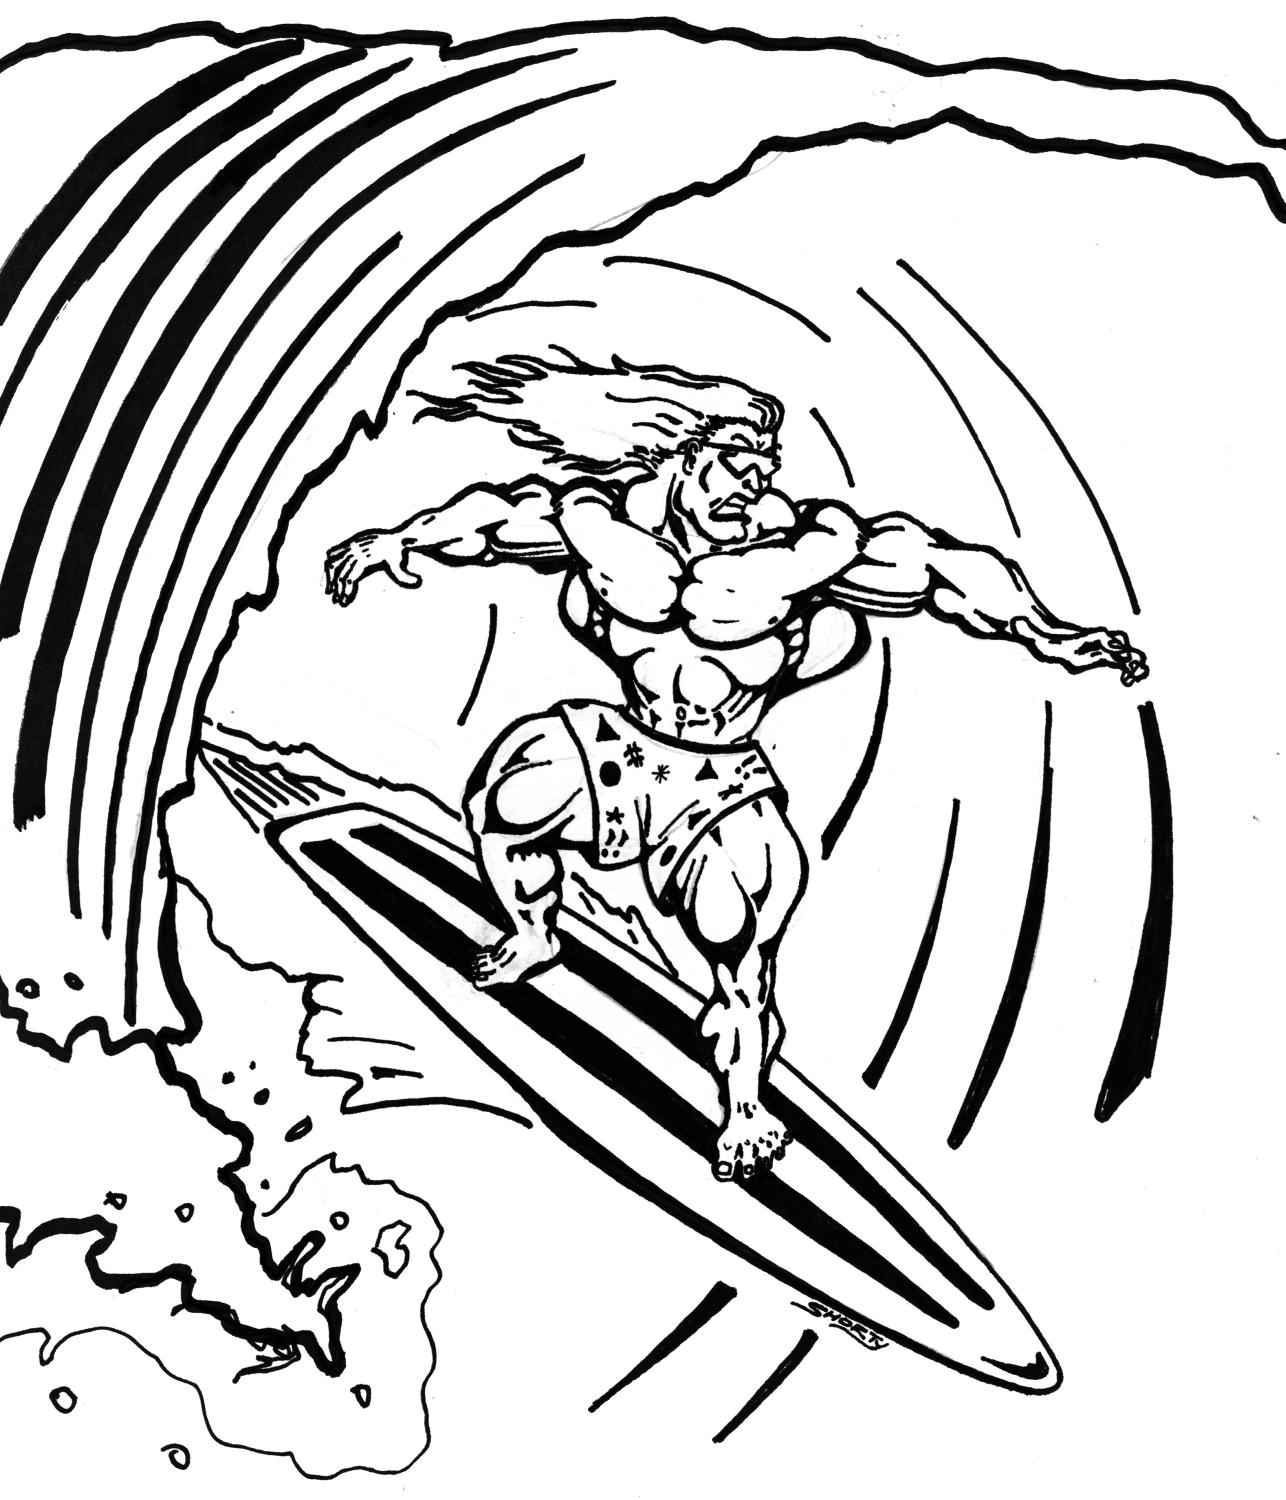 Surfboard Coloring Book Pages - High Quality Coloring Pages